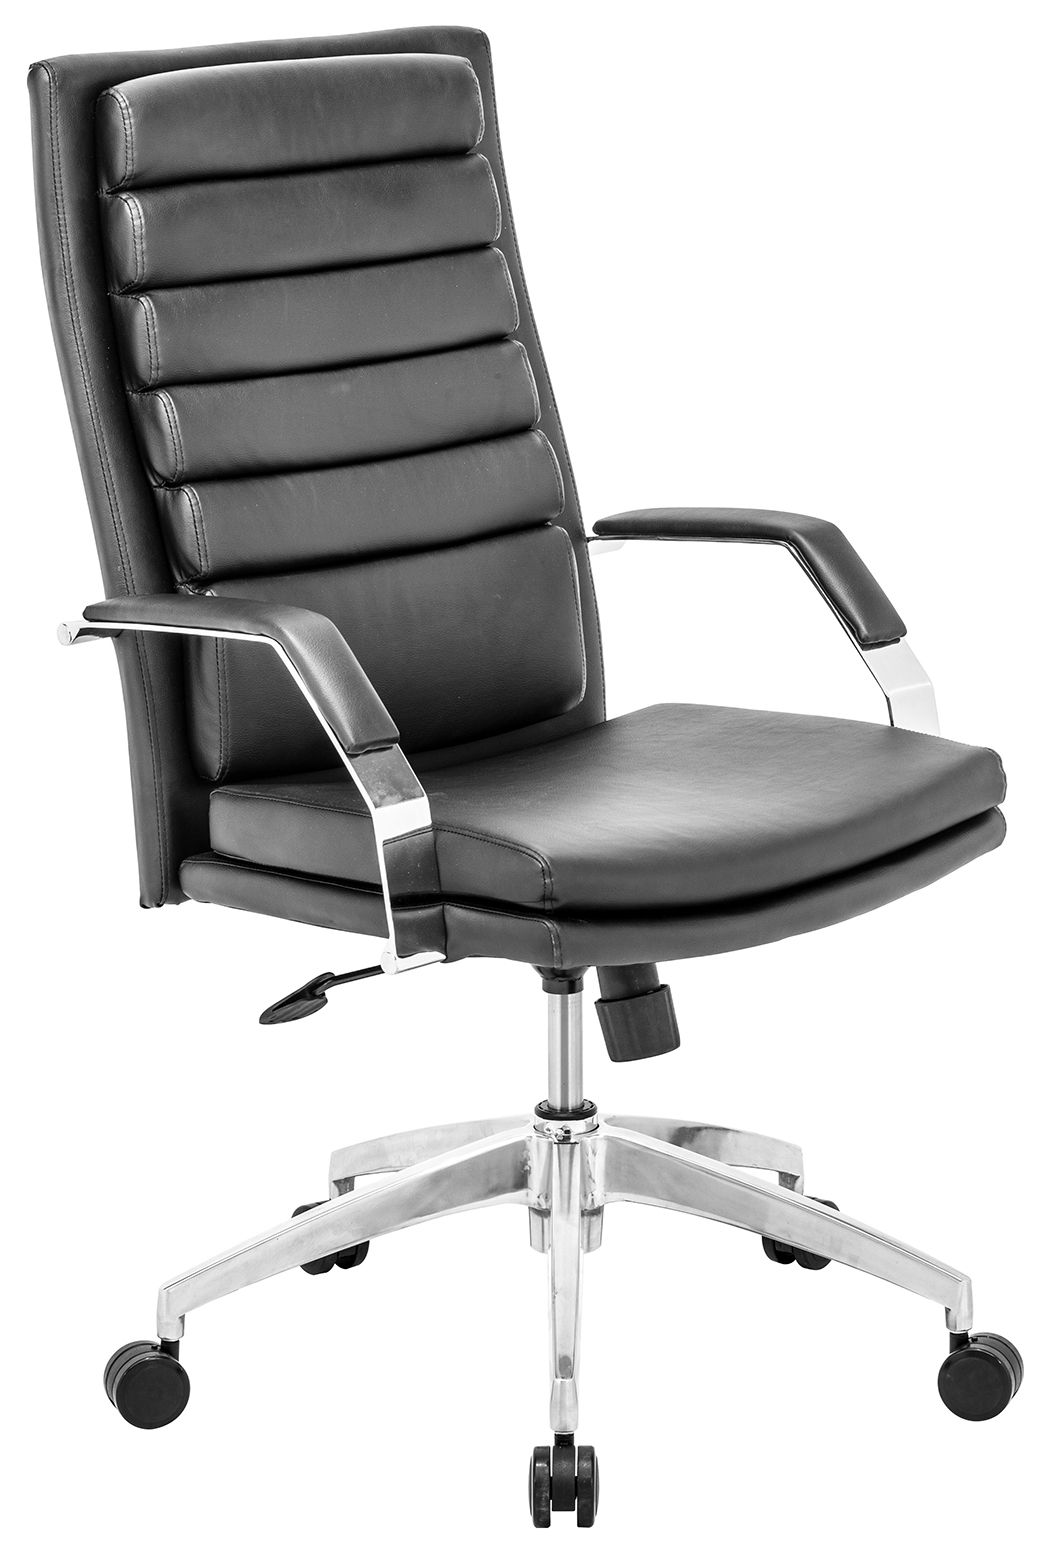 Chrome Finish Director Comfort Home Office Chair, Black